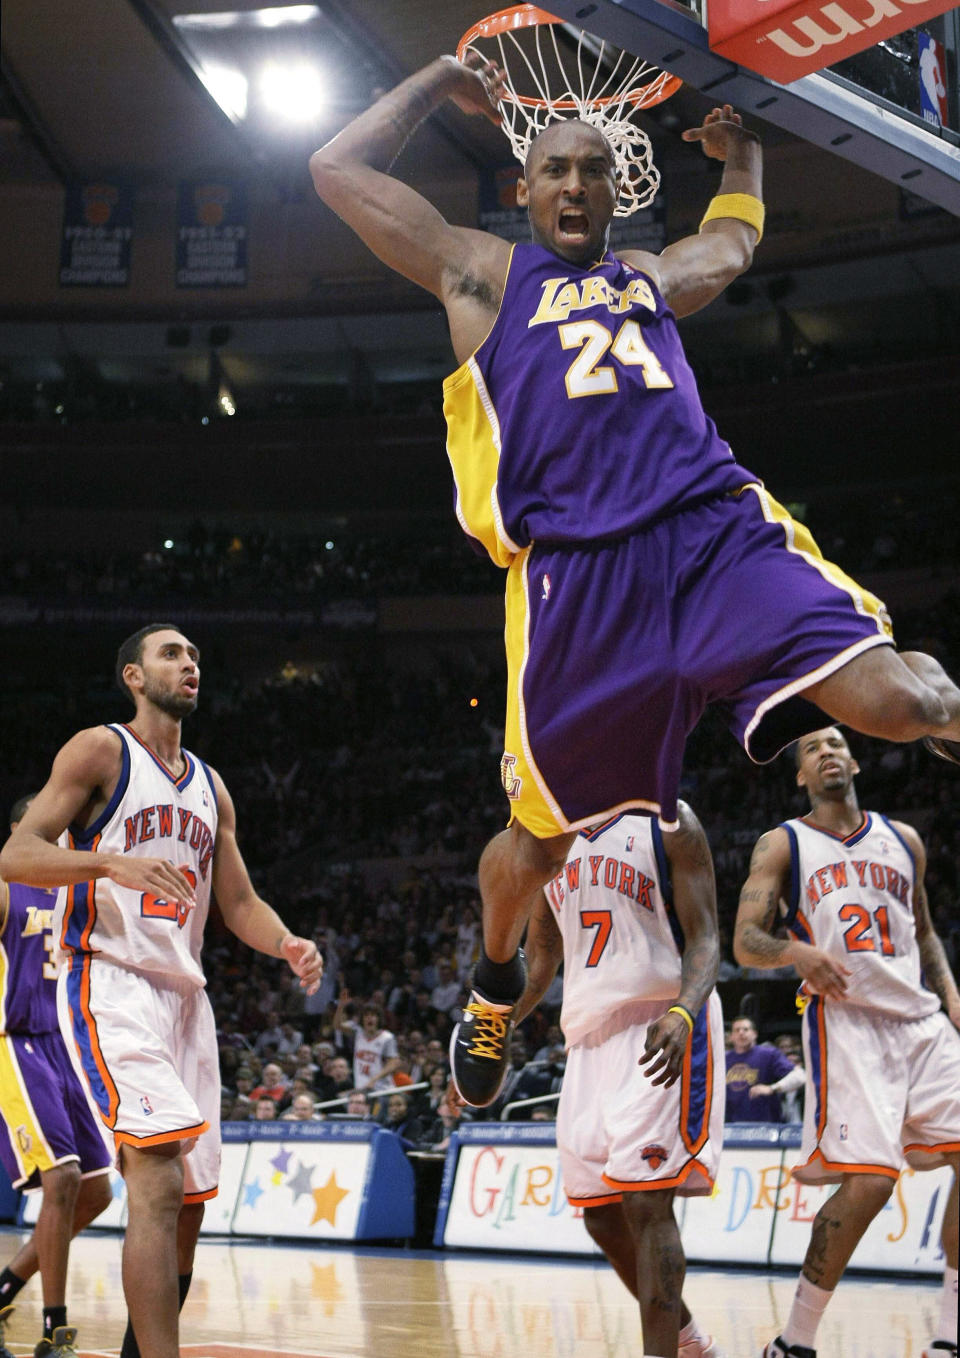 FILE - In this Feb. 2, 2009 file photo Los Angeles Lakers guard Kobe Bryant (24) reacts after a slam dunk shot in the first half of an NBA basketball game at Madison Square Garden in New York. Bryant had 61 points in the game. Bryant, the 18-time NBA All-Star who won five championships and became one of the greatest basketball players of his generation during a 20-year career with the Los Angeles Lakers, died in a helicopter crash Sunday, Jan. 26, 2020. (AP Photo/Kathy Willens)